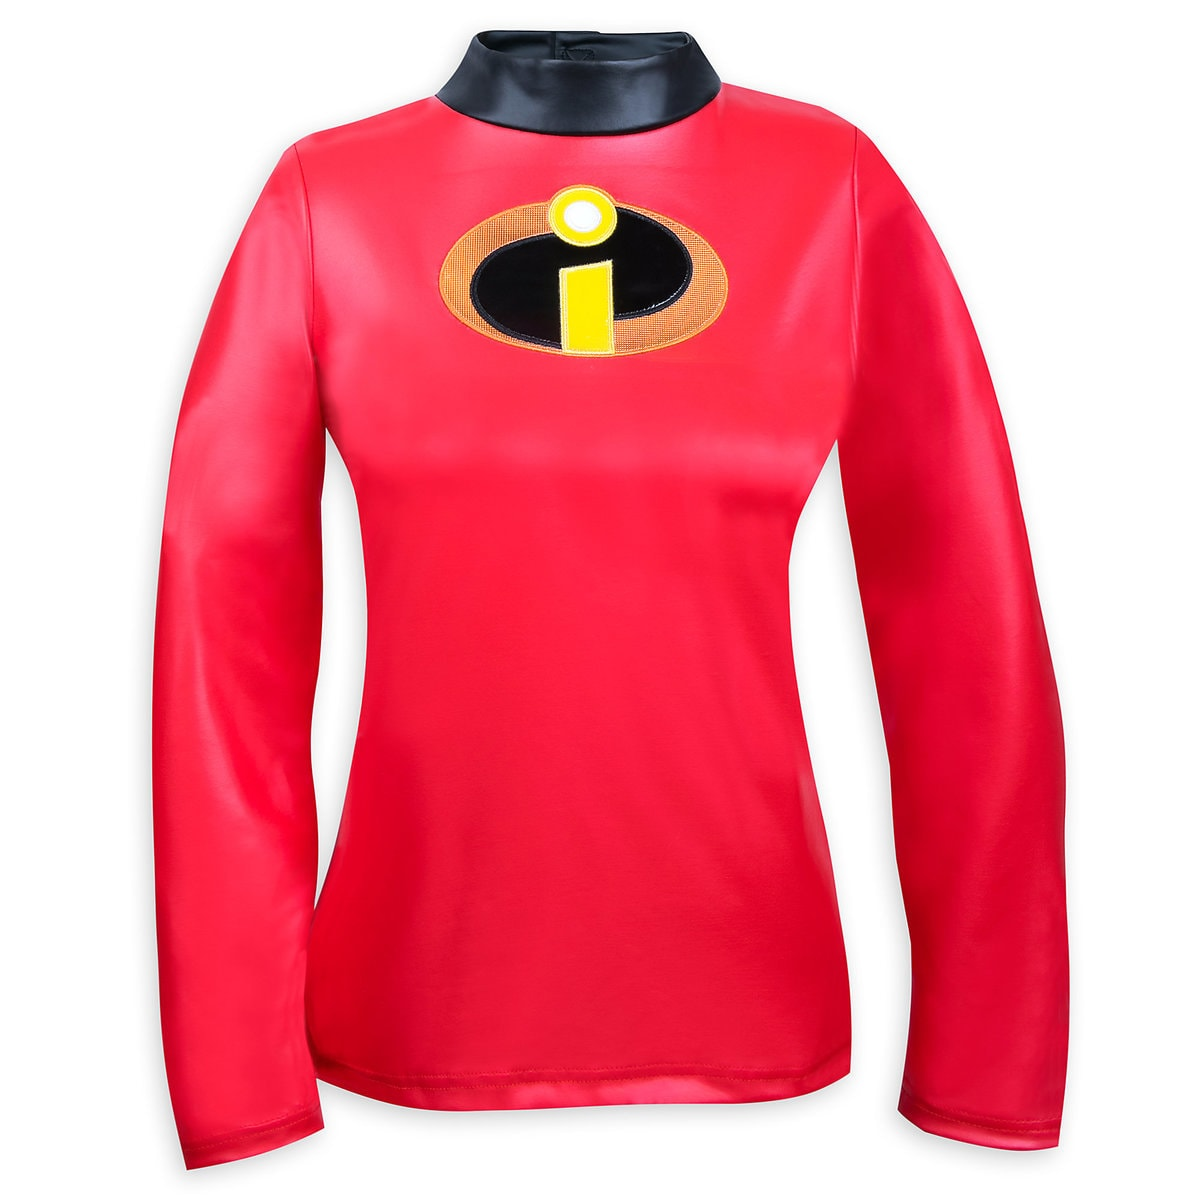 c92eb22c2cd9 Product Image of Mrs. Incredible Costume for Adults - Incredibles 2 # 4